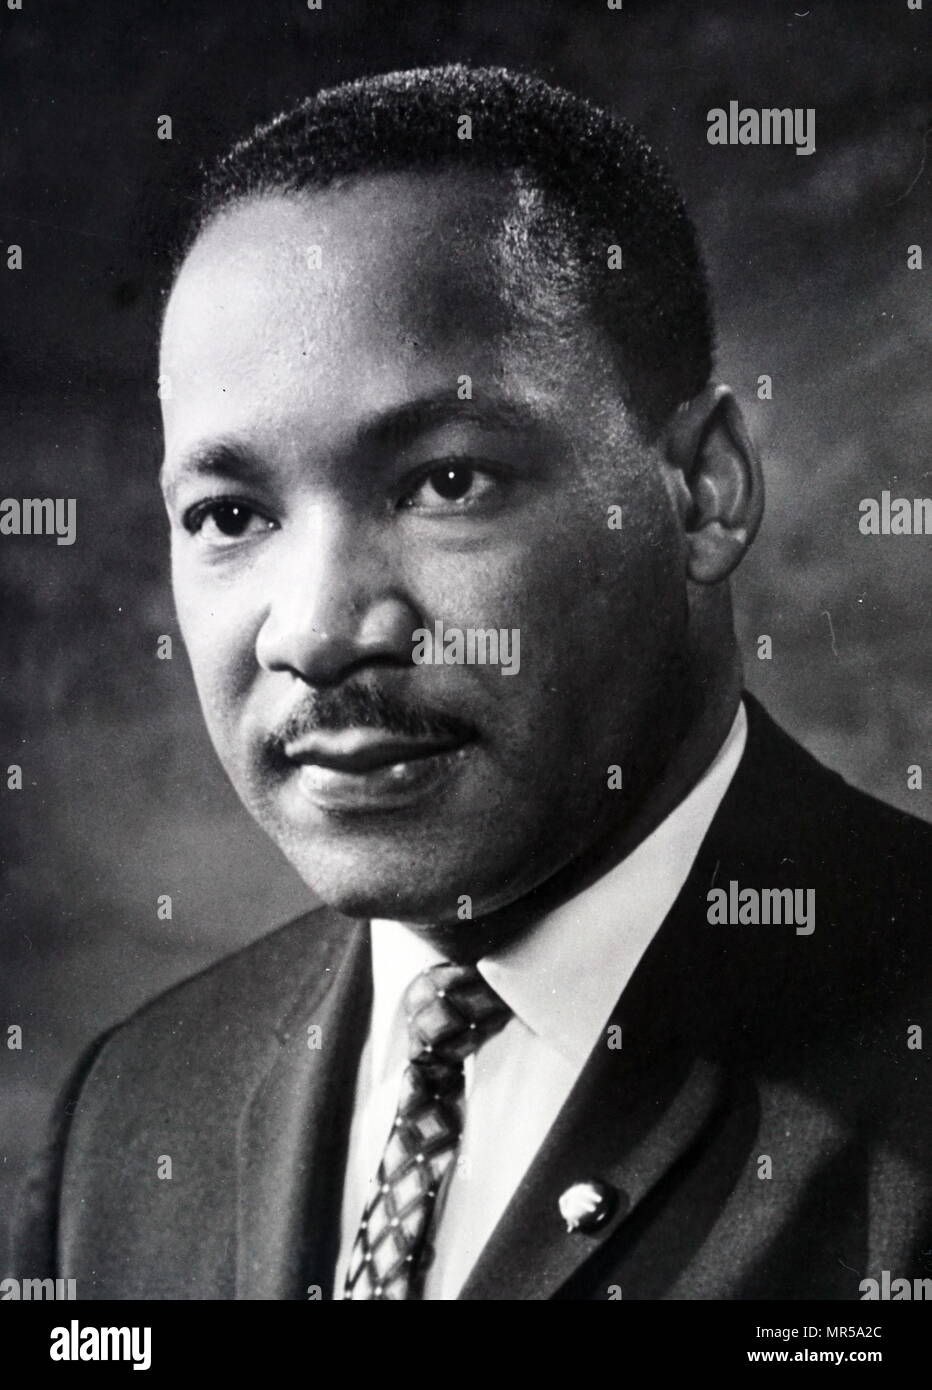 Photograph of Martin Luther King Jr. (1929-1968) an American Baptist minister, civil rights activist and Nobel Peace Prize-winner. Dated 20th century - Stock Image